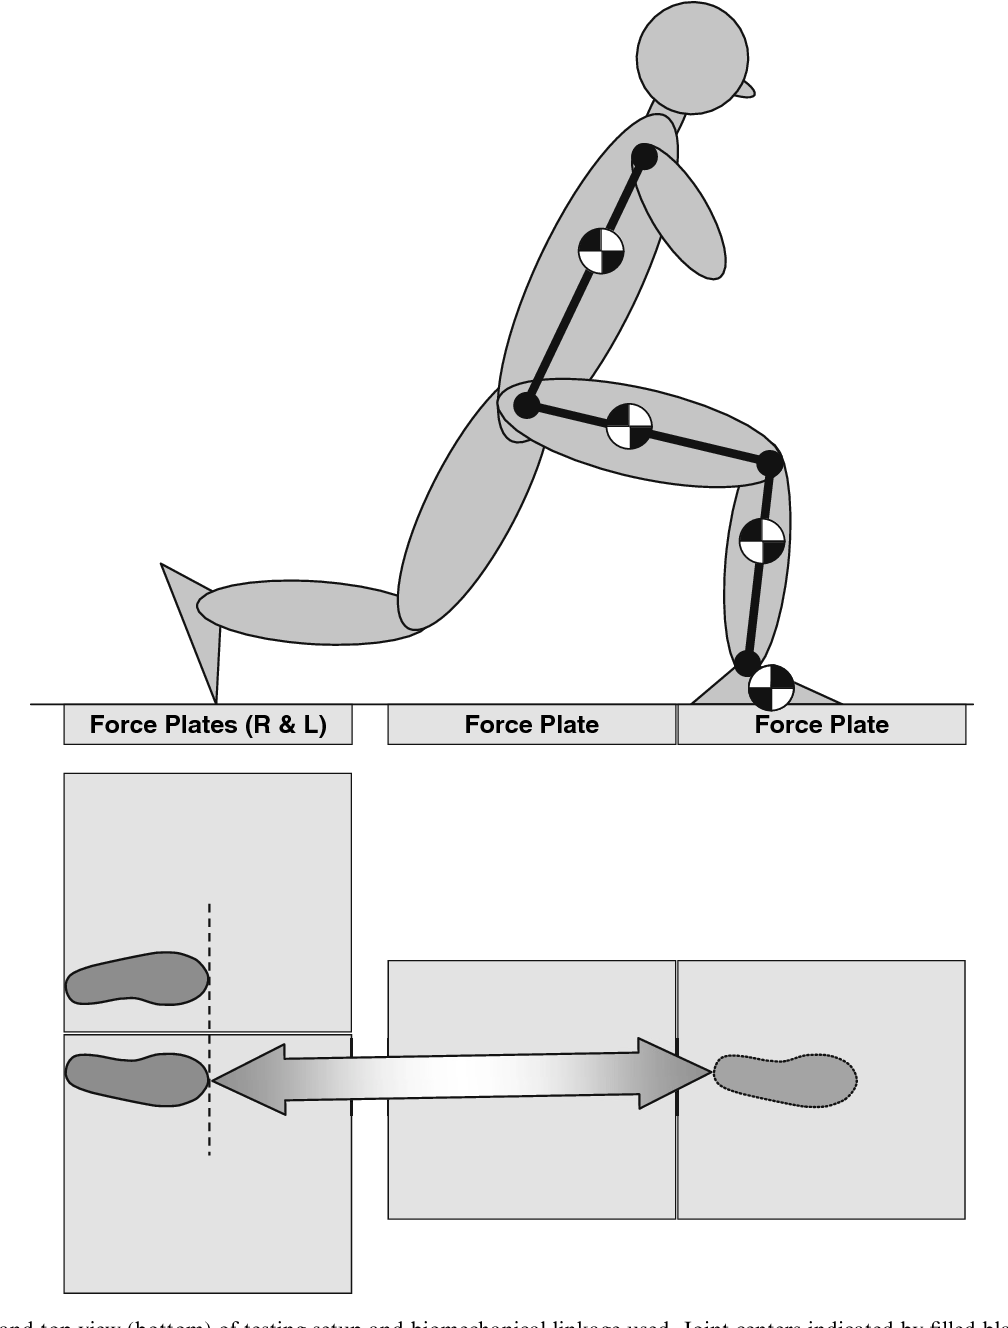 Fig. 1. Side view (top) and top view (bottom) of testing setup and biomechanical linkage used. Joint centers indicated by filled black circles and segment centers of mass (foot, shank, thigh, and head–arms–torso) indicated by checkered circles.